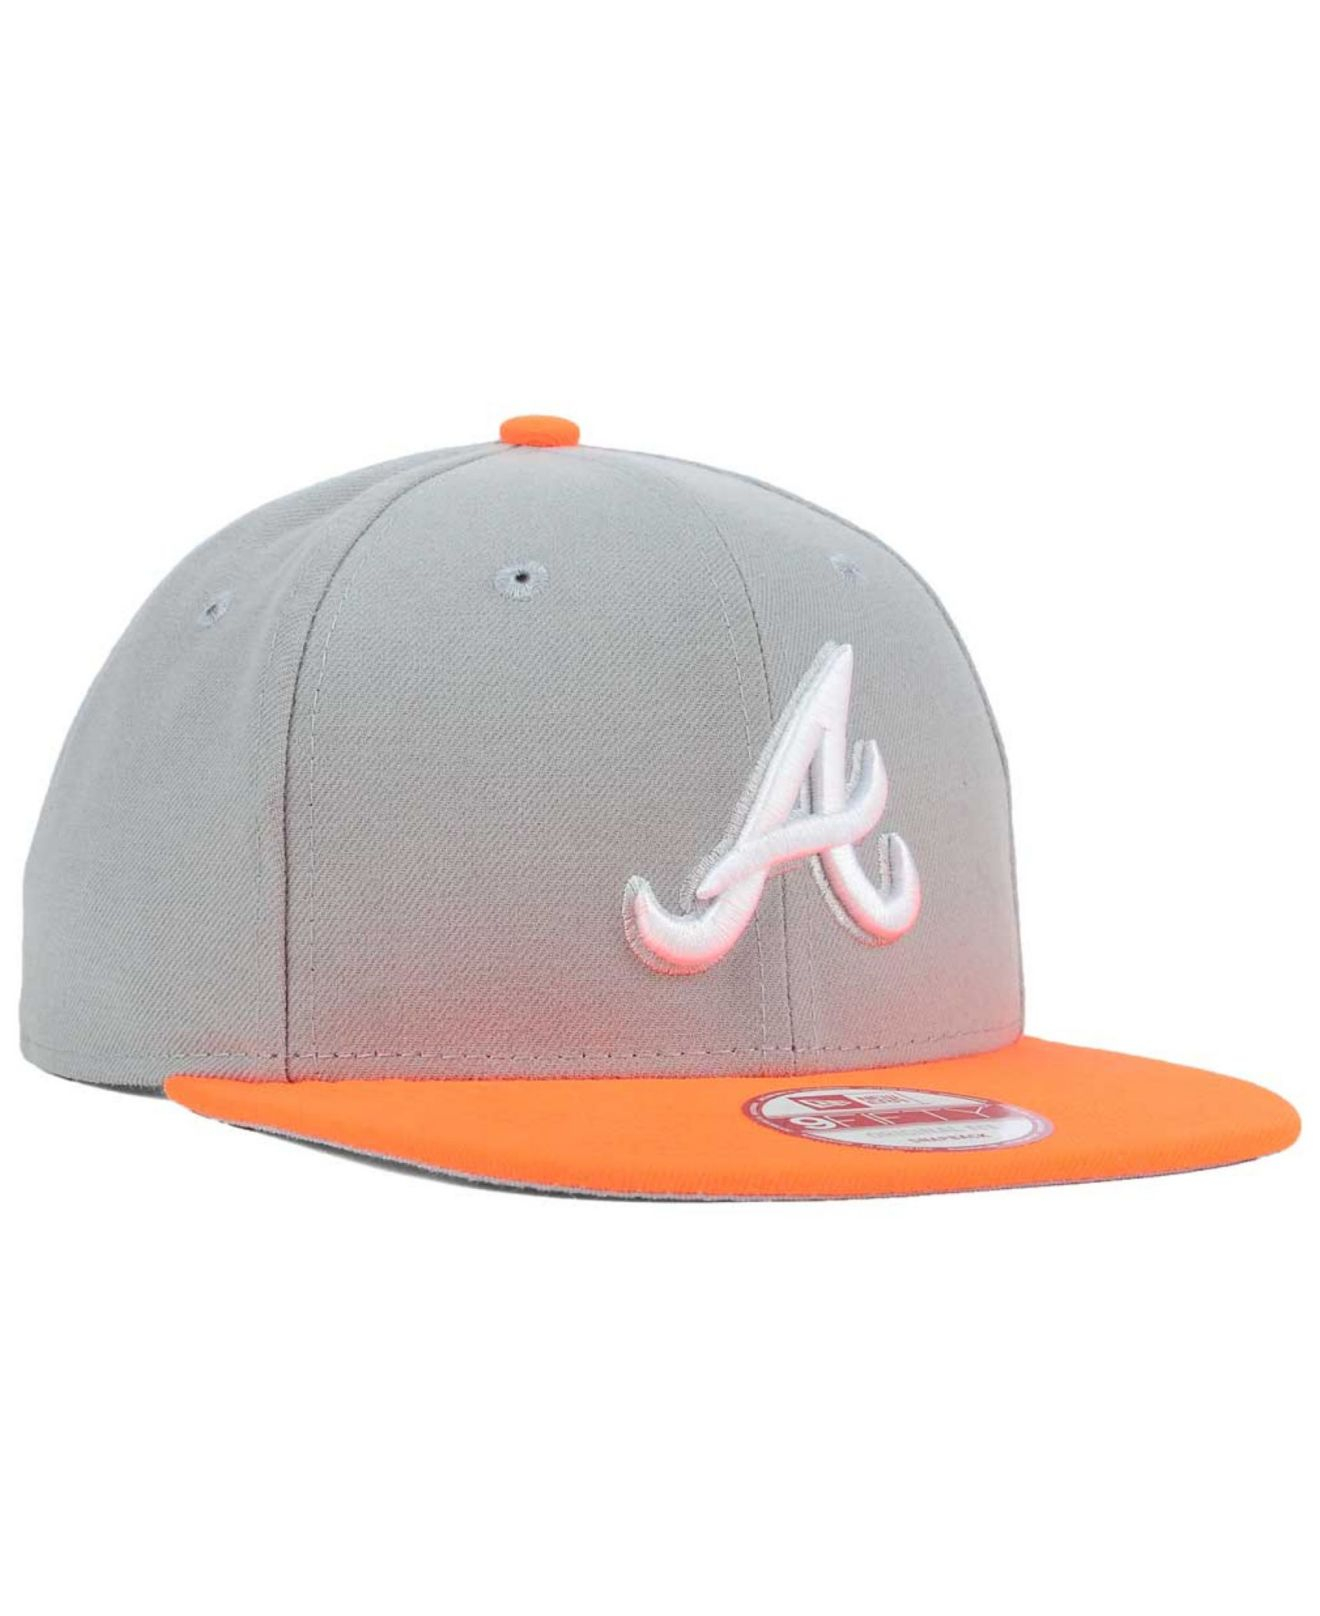 huge discount 3586e 51dfb ... gray for men new zealand atlanta braves fitted hat lyst ktz atlanta  braves the queens 9fifty snapback cap in ...